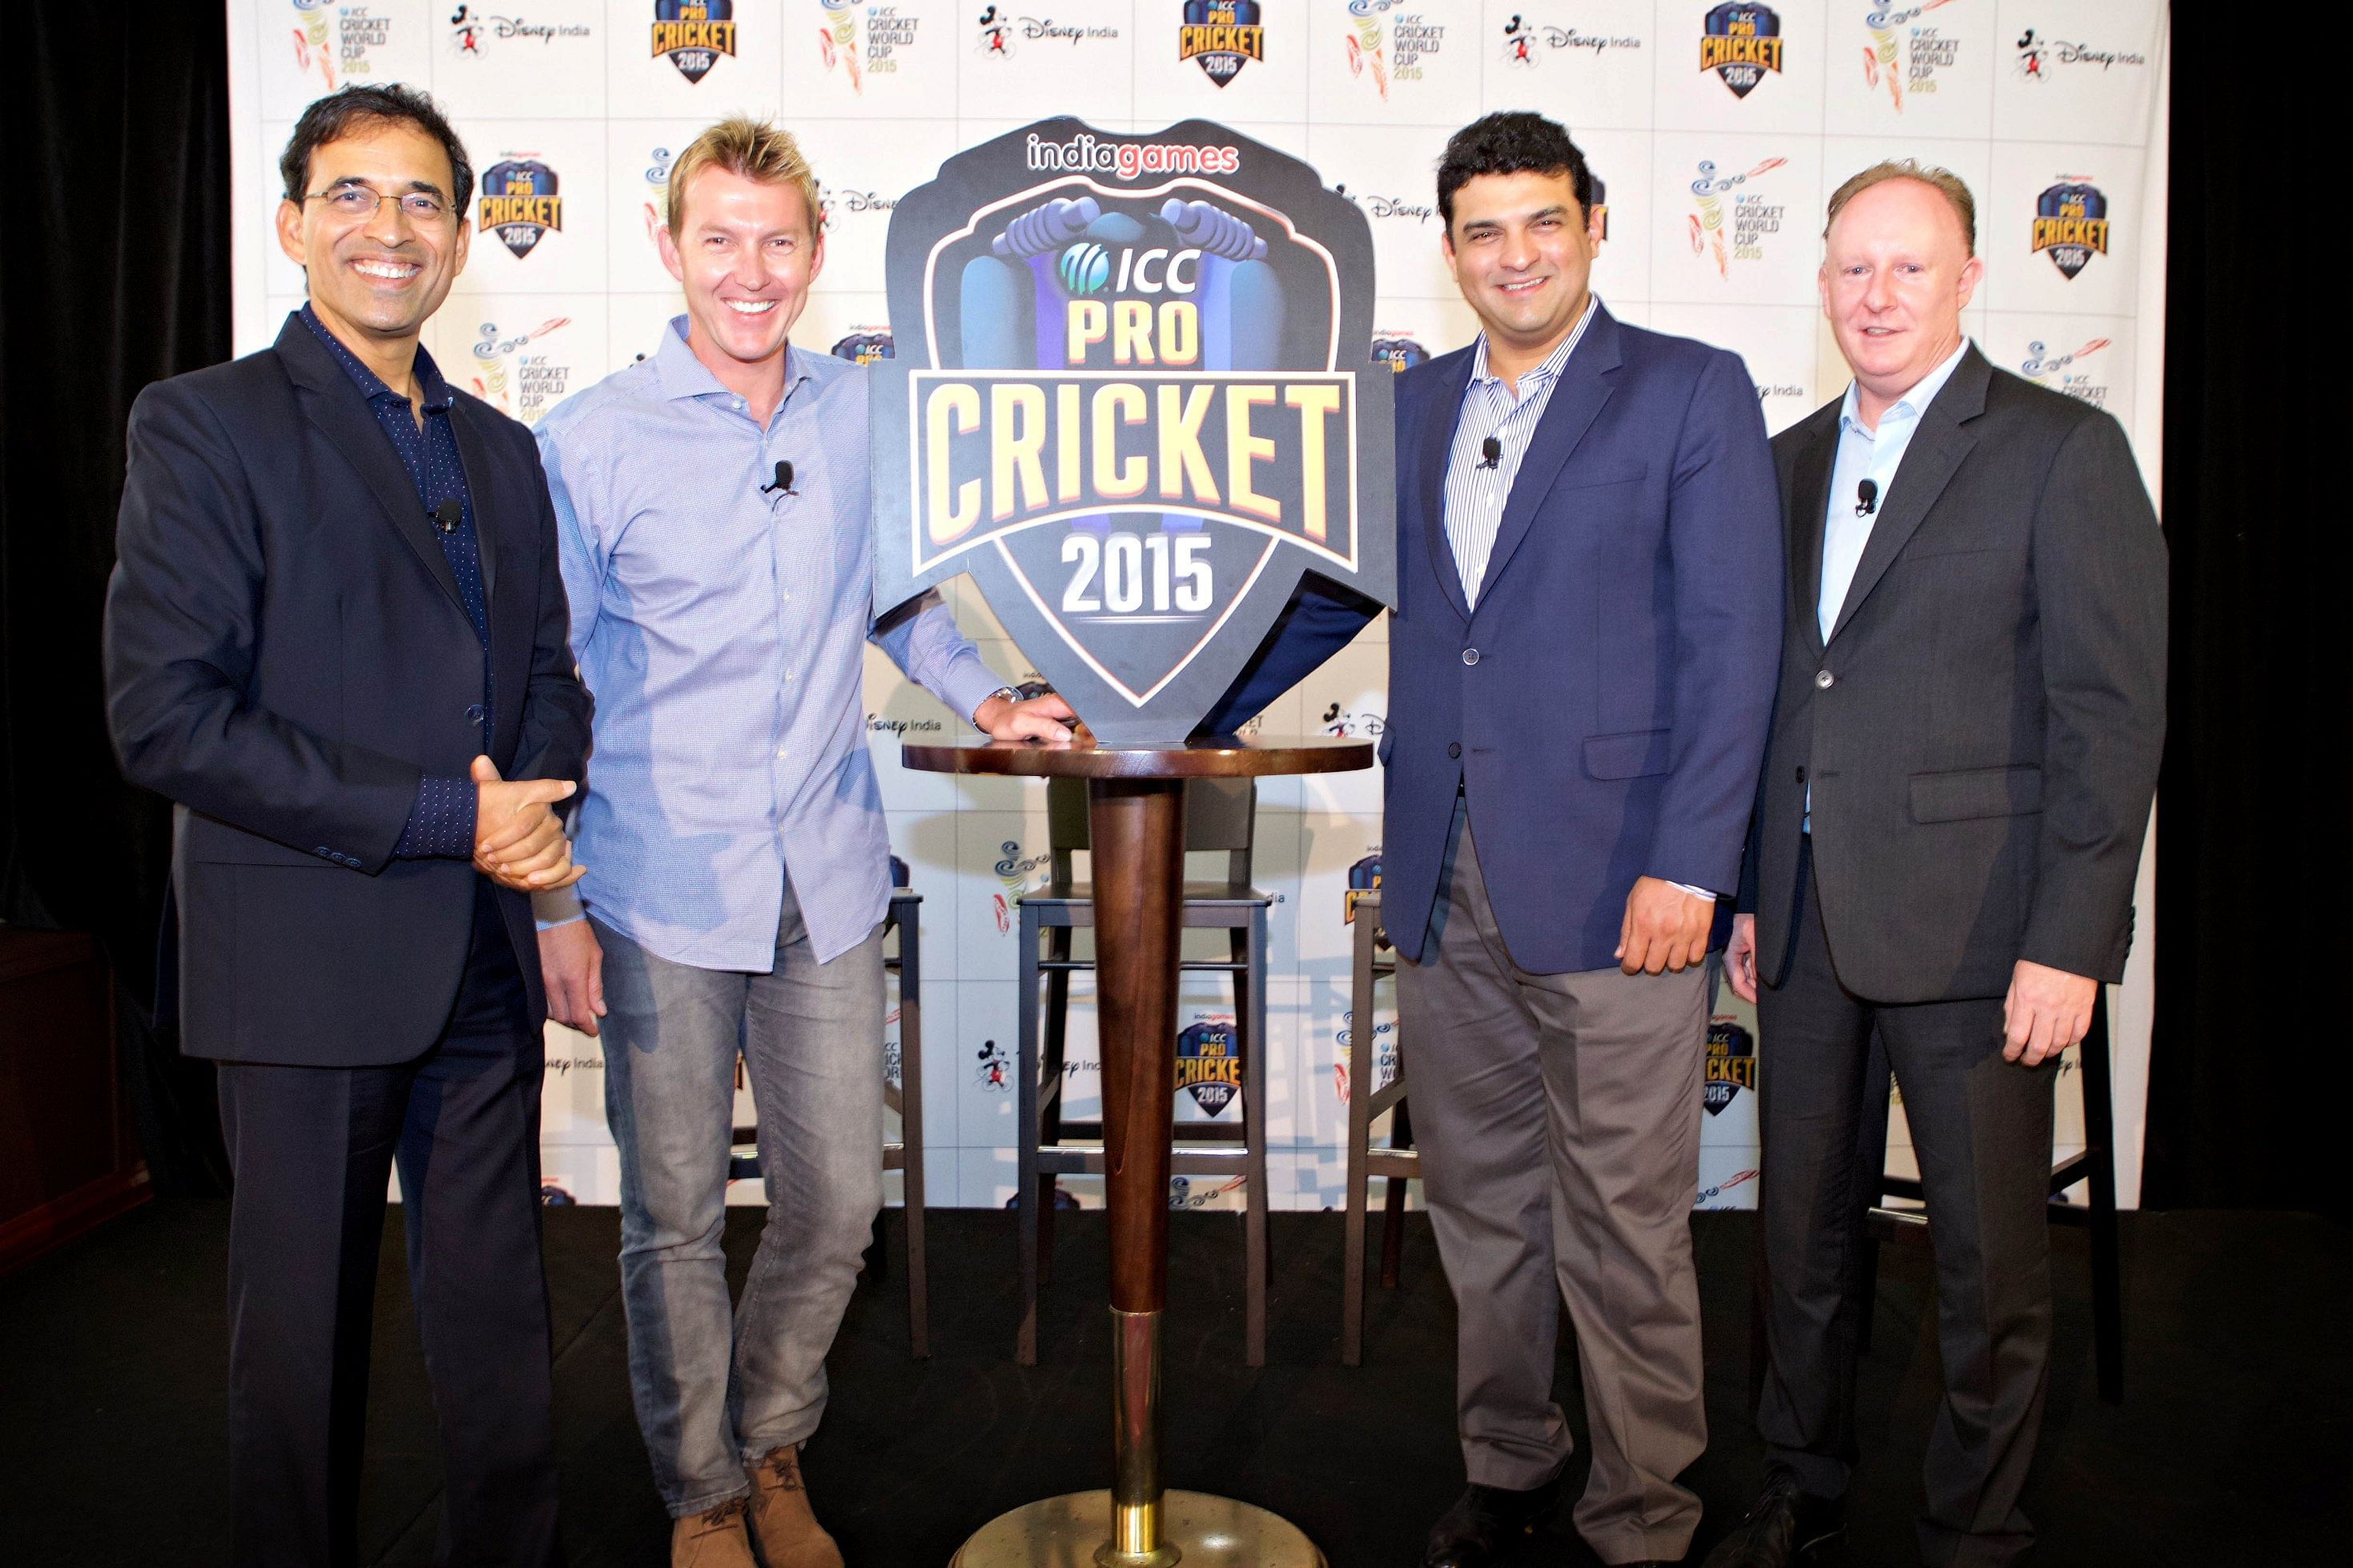 Disney India launch official ICC Cricket World Cup 2015 game - ICC Pro Cricket 2015